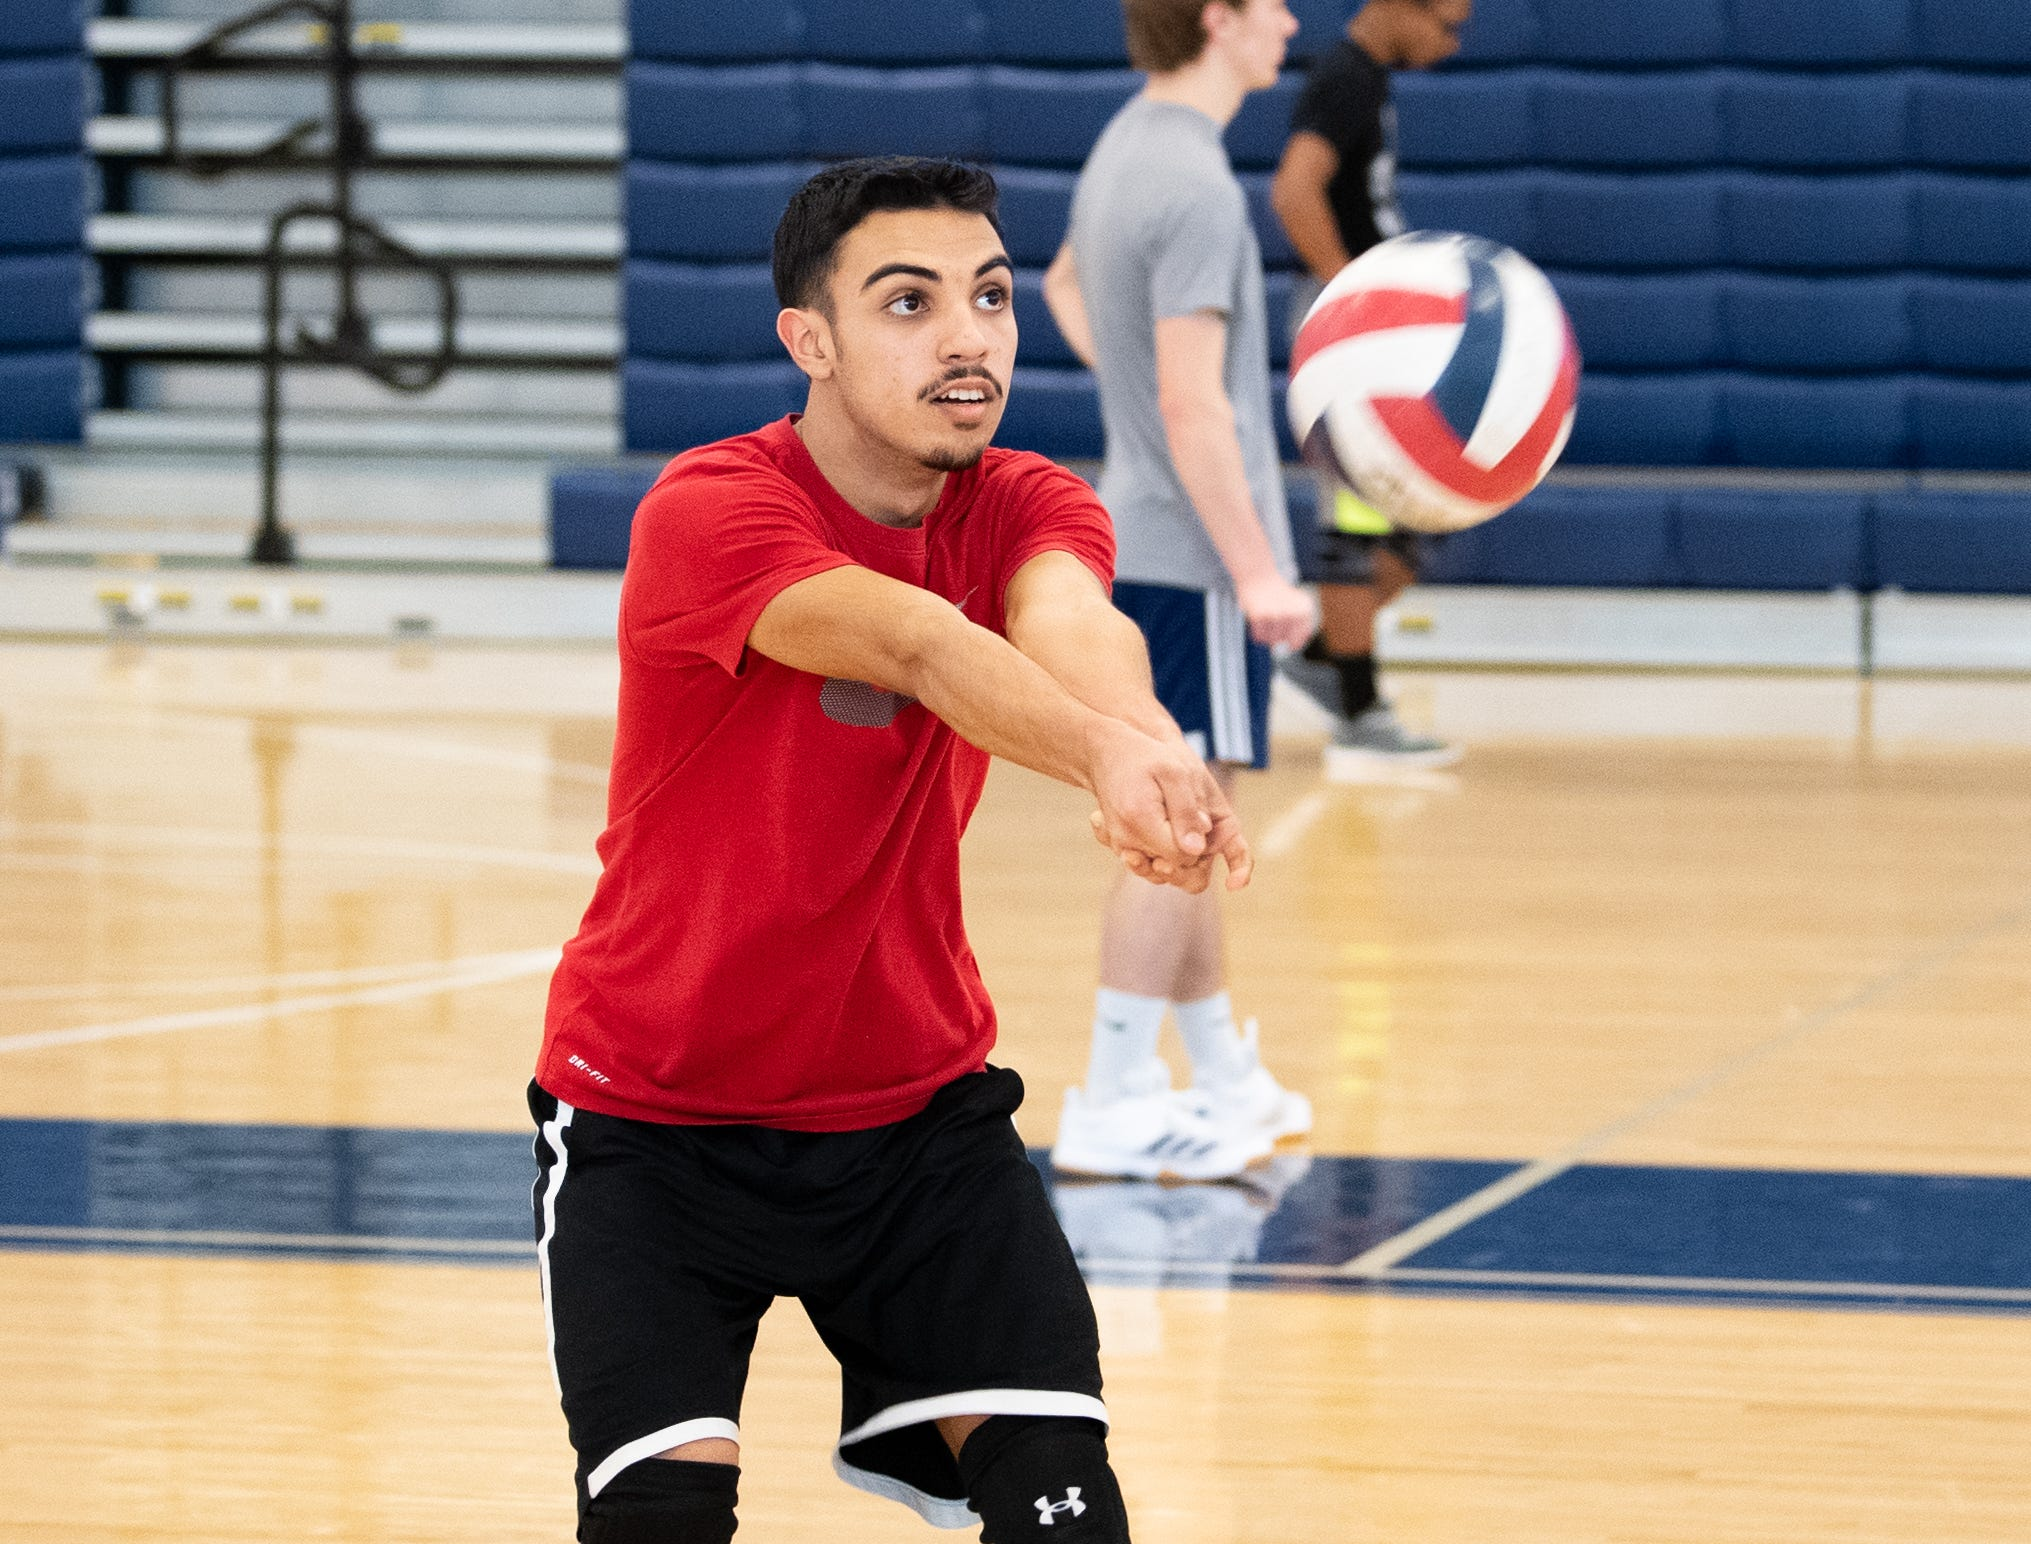 The West York boys' volleyball team works on their form, March 5, 2019.